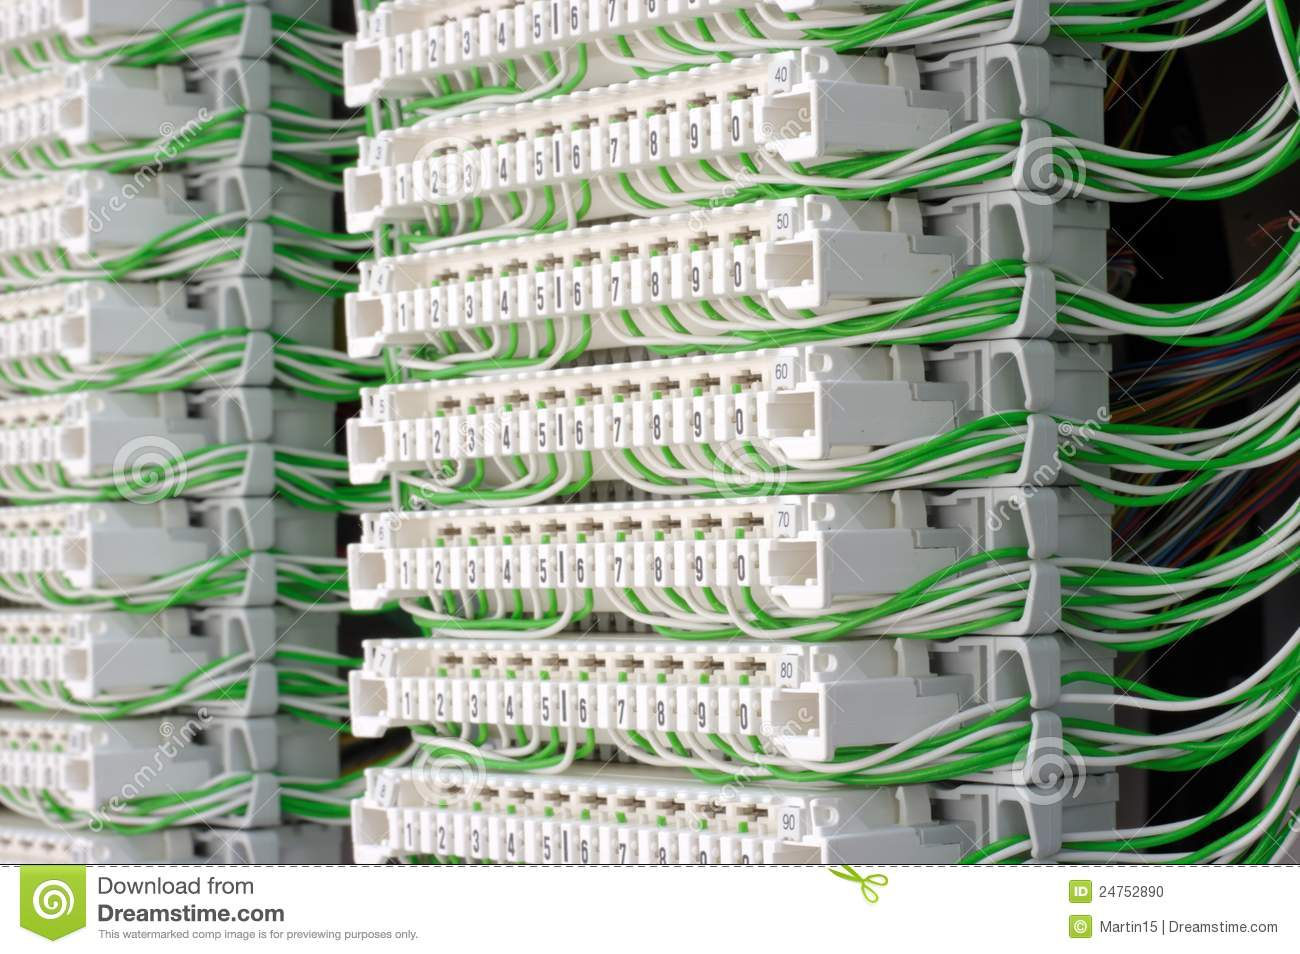 Telephone Cable Wiring Configuration Jumper Diagram Libraries Nte5 Linebox Instructions Connection Modules With Wires Stock Photo Image Of